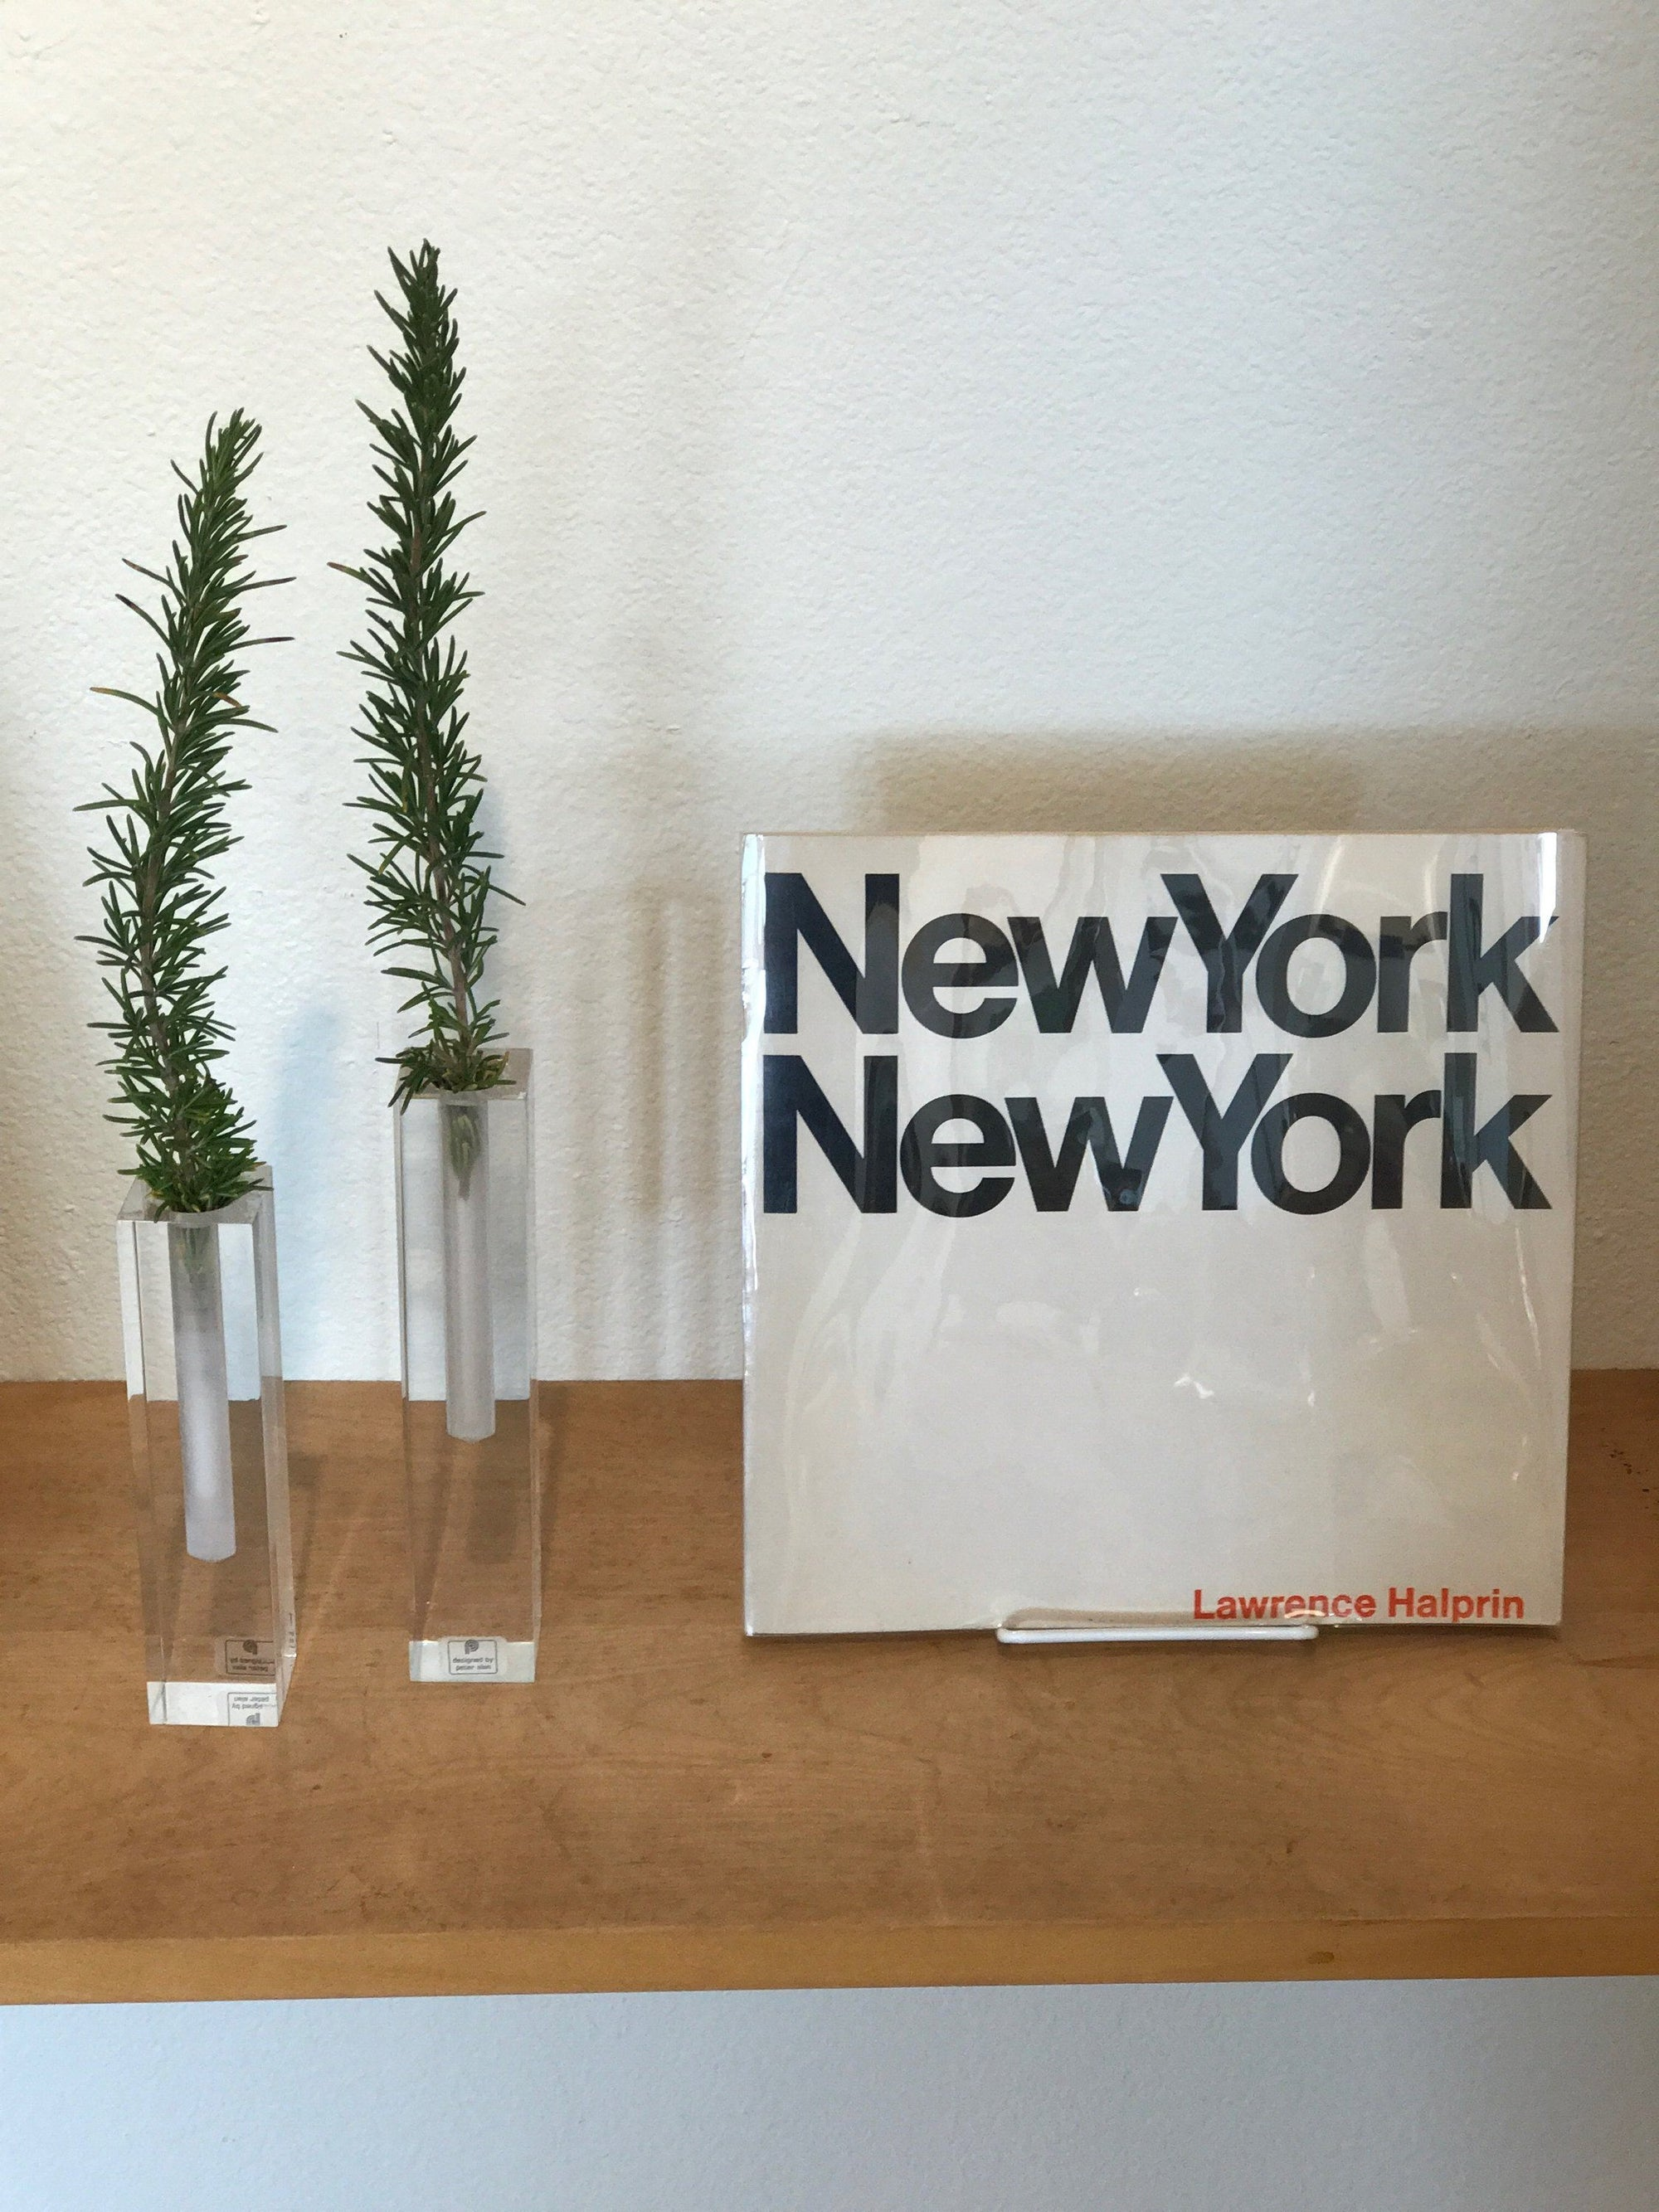 Vintage @ Placewares, New York New York by Lawrence Halprin, - Placewares